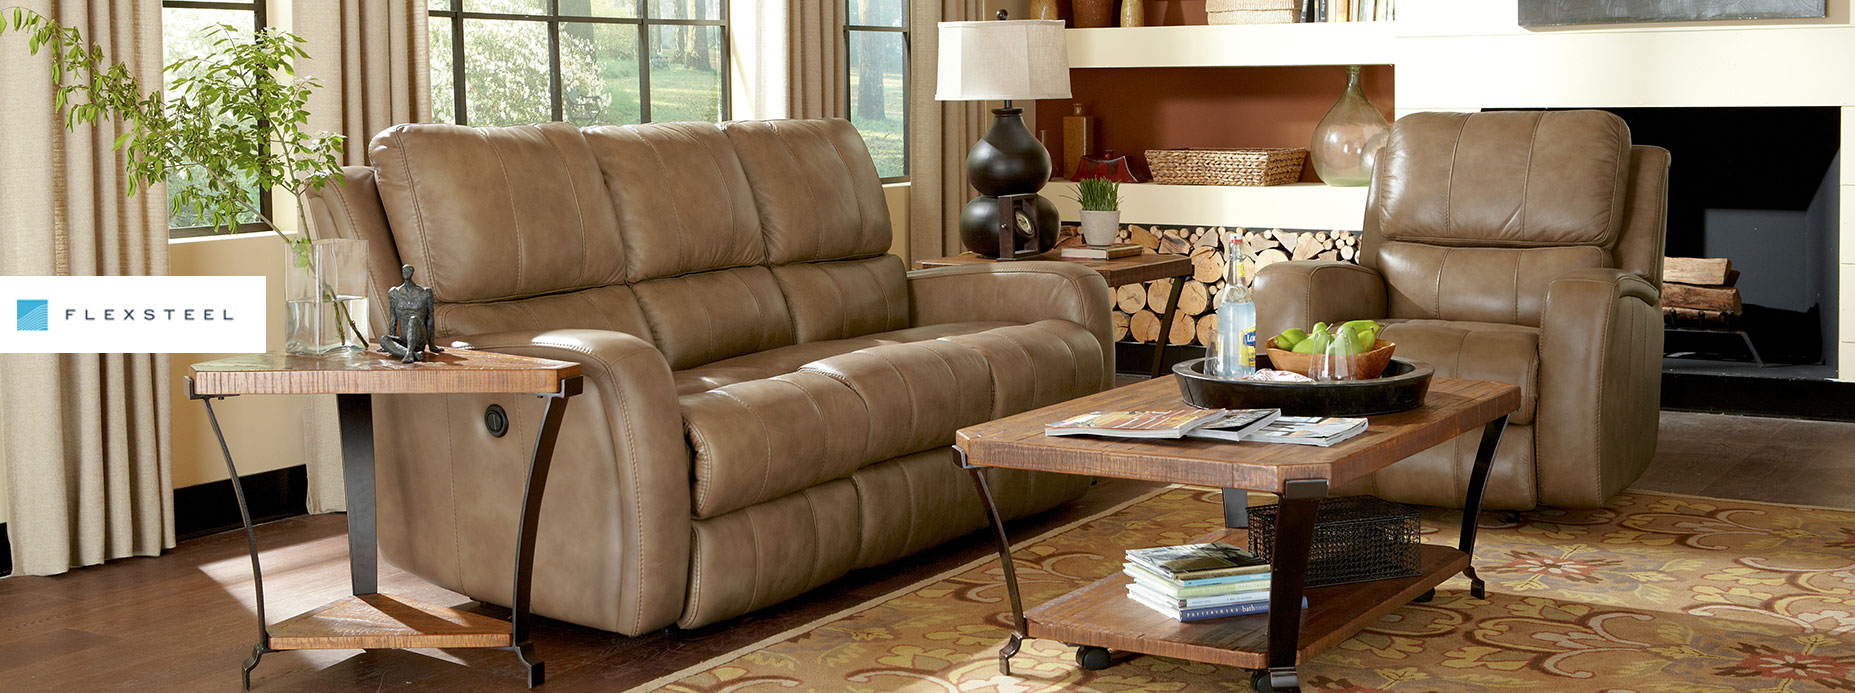 flexsteel sofa sets seat height 21 inches furniture discount store and showroom in hickory nc